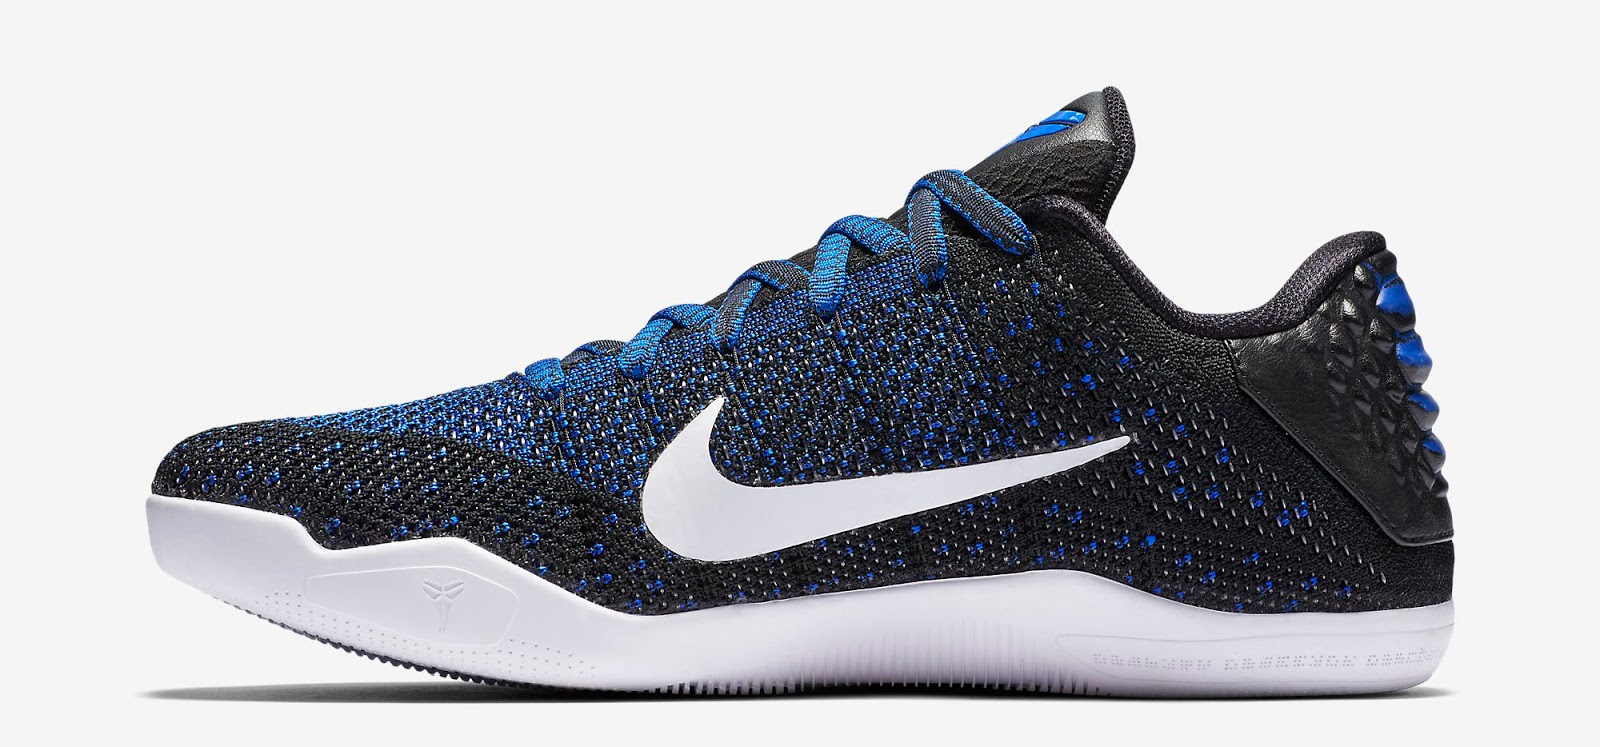 fb09768d1f9d ajordanxi Your  1 Source For Sneaker Release Dates  Nike Kobe 11 ...